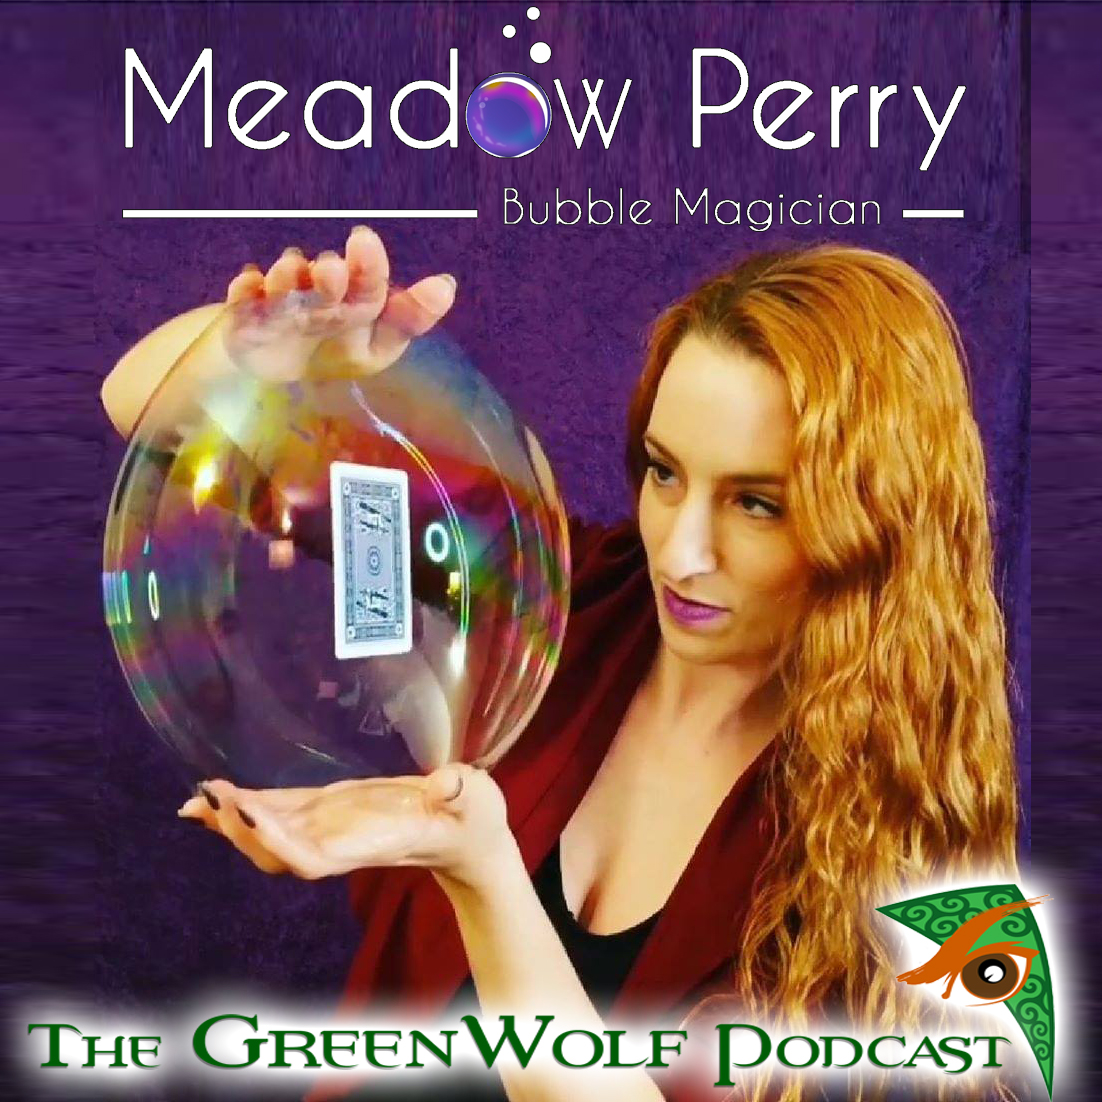 The GreenWolf Podcast - 003 - Bubble Magician Meadow Perry